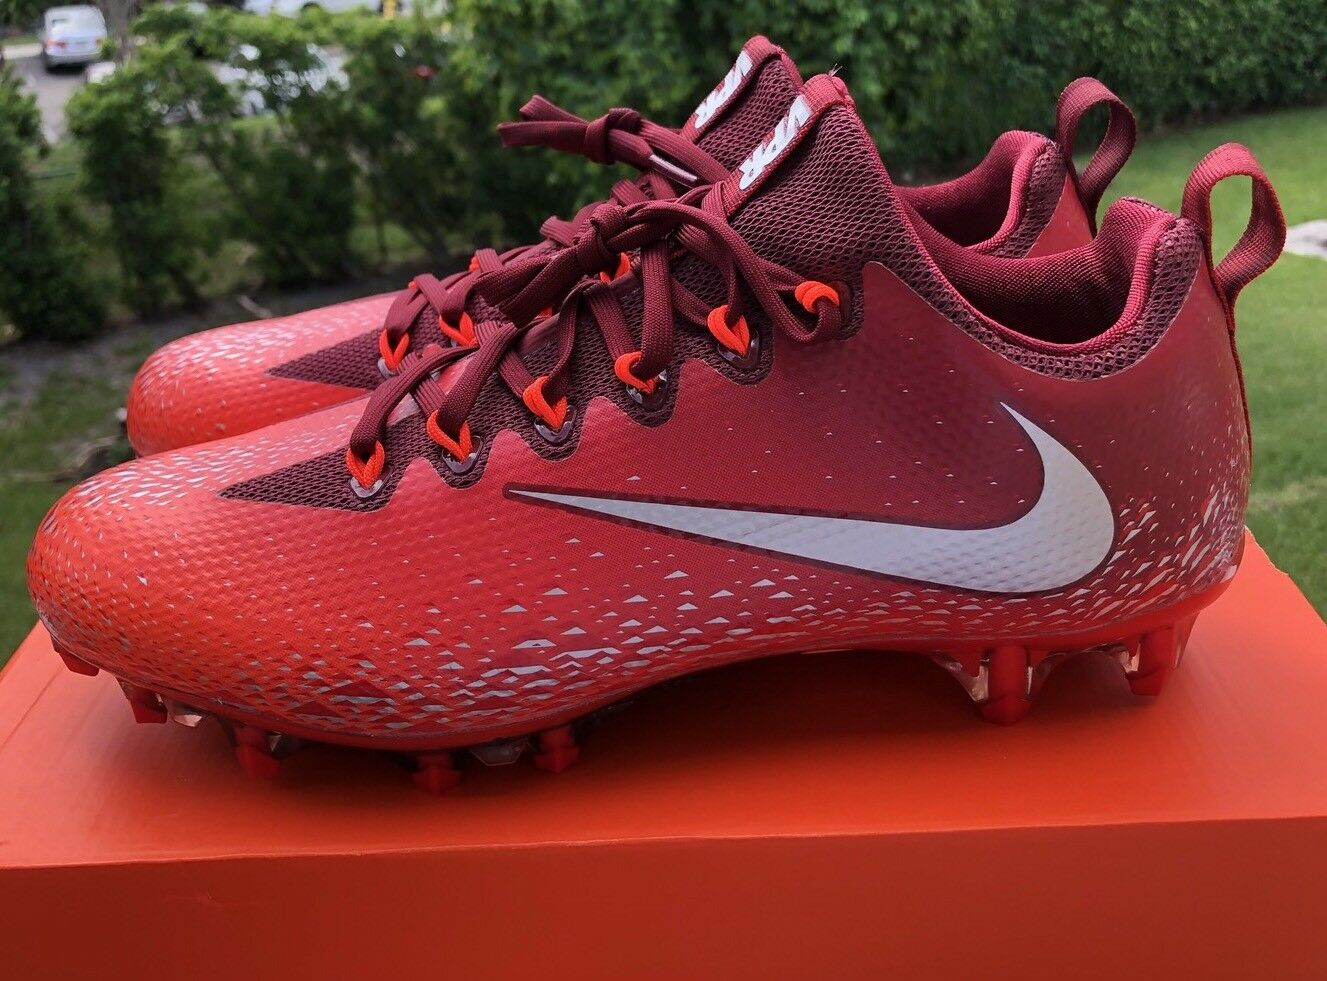 Nike Vapor Untouchable Pro Red Silver Football Cleats Size 10 833385-608